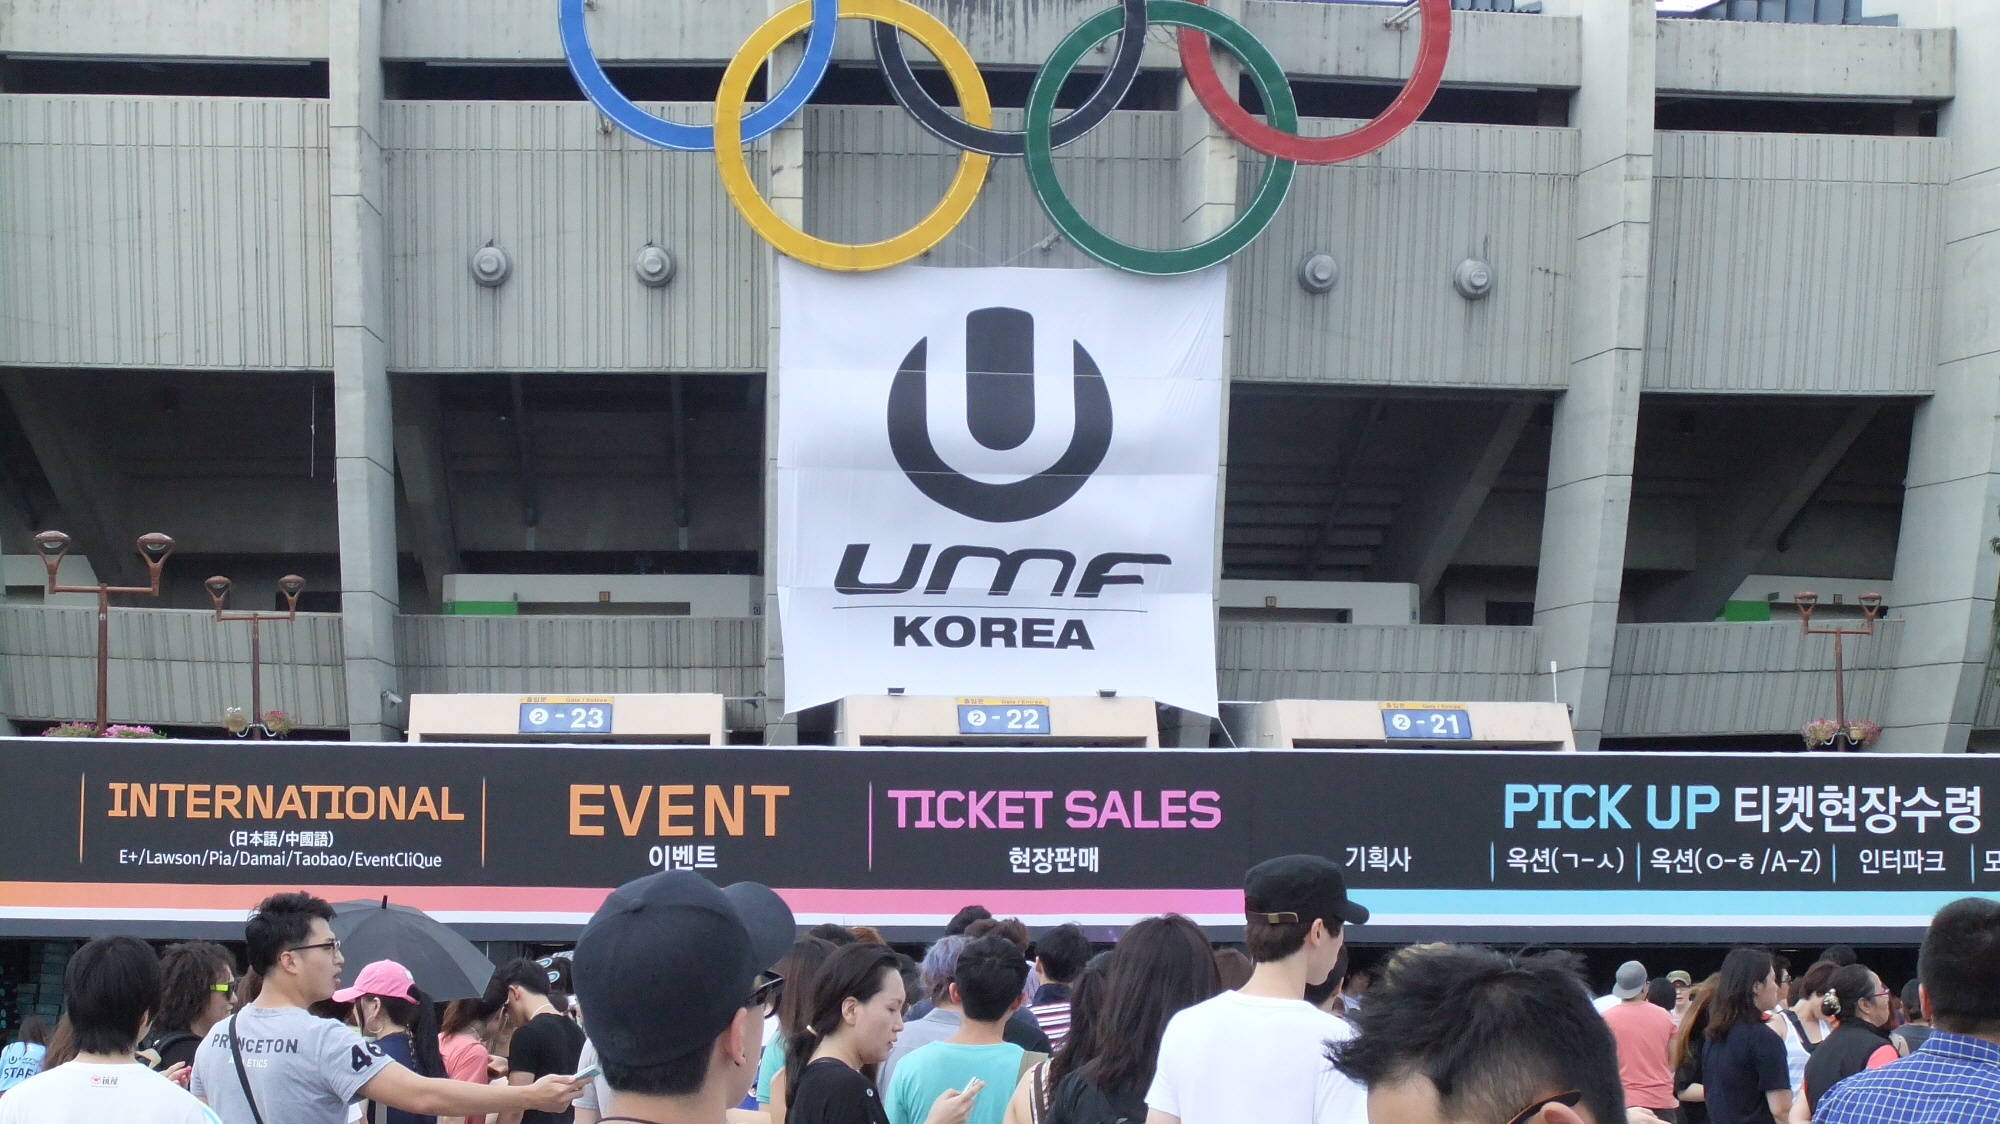 Ultra Music Festival Korea 2012